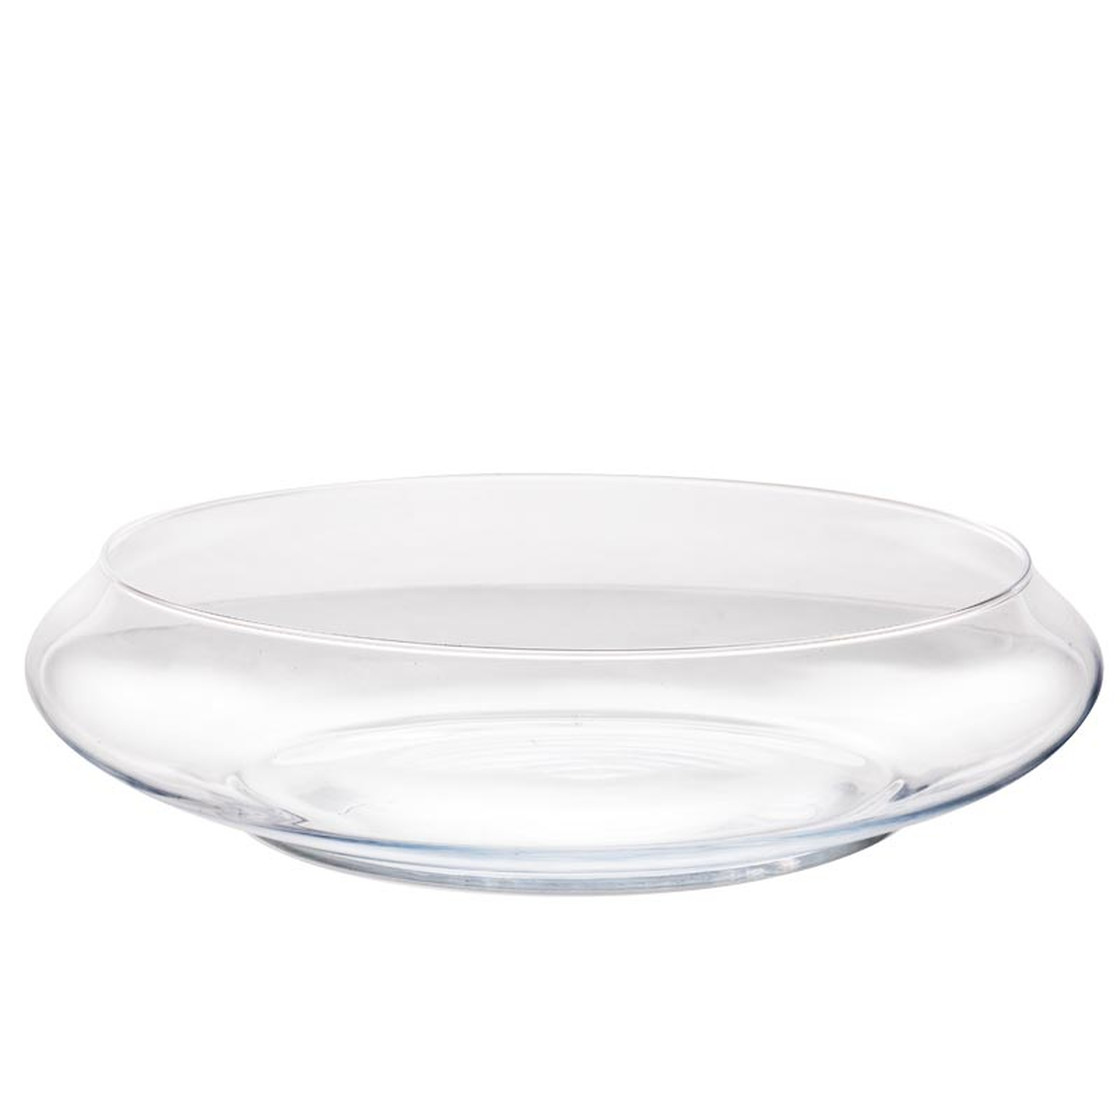 Glass Bowl Xxl Decorative Bowl Glass Round Transparent 40cm Cristal 76 00